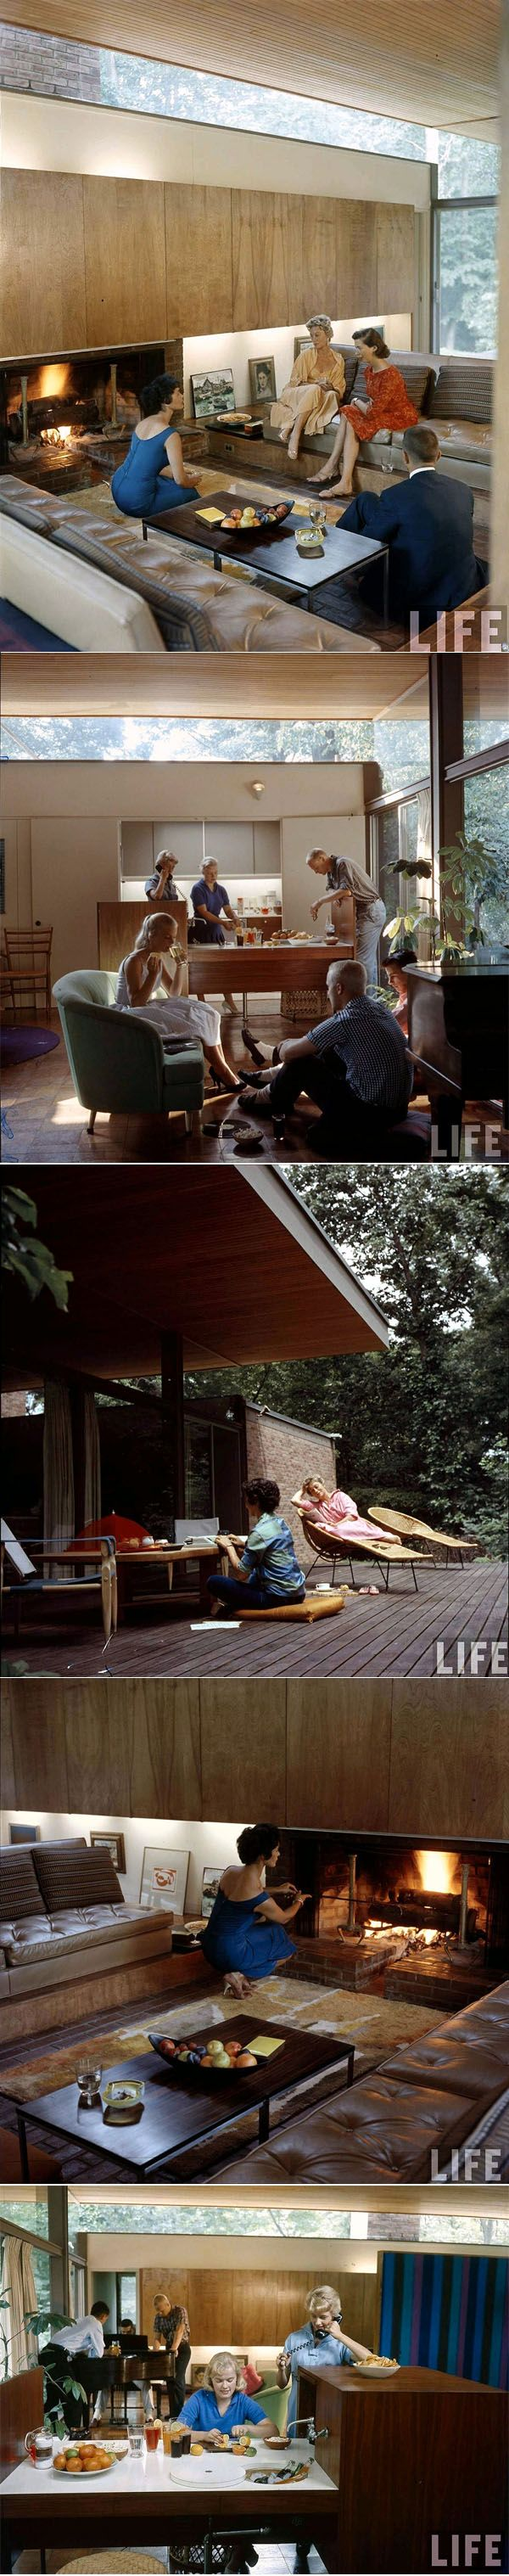 LIFE Magazine, 1958: Beattie Residence. A conversation pit! [mid century modern 1960s vintage photo]